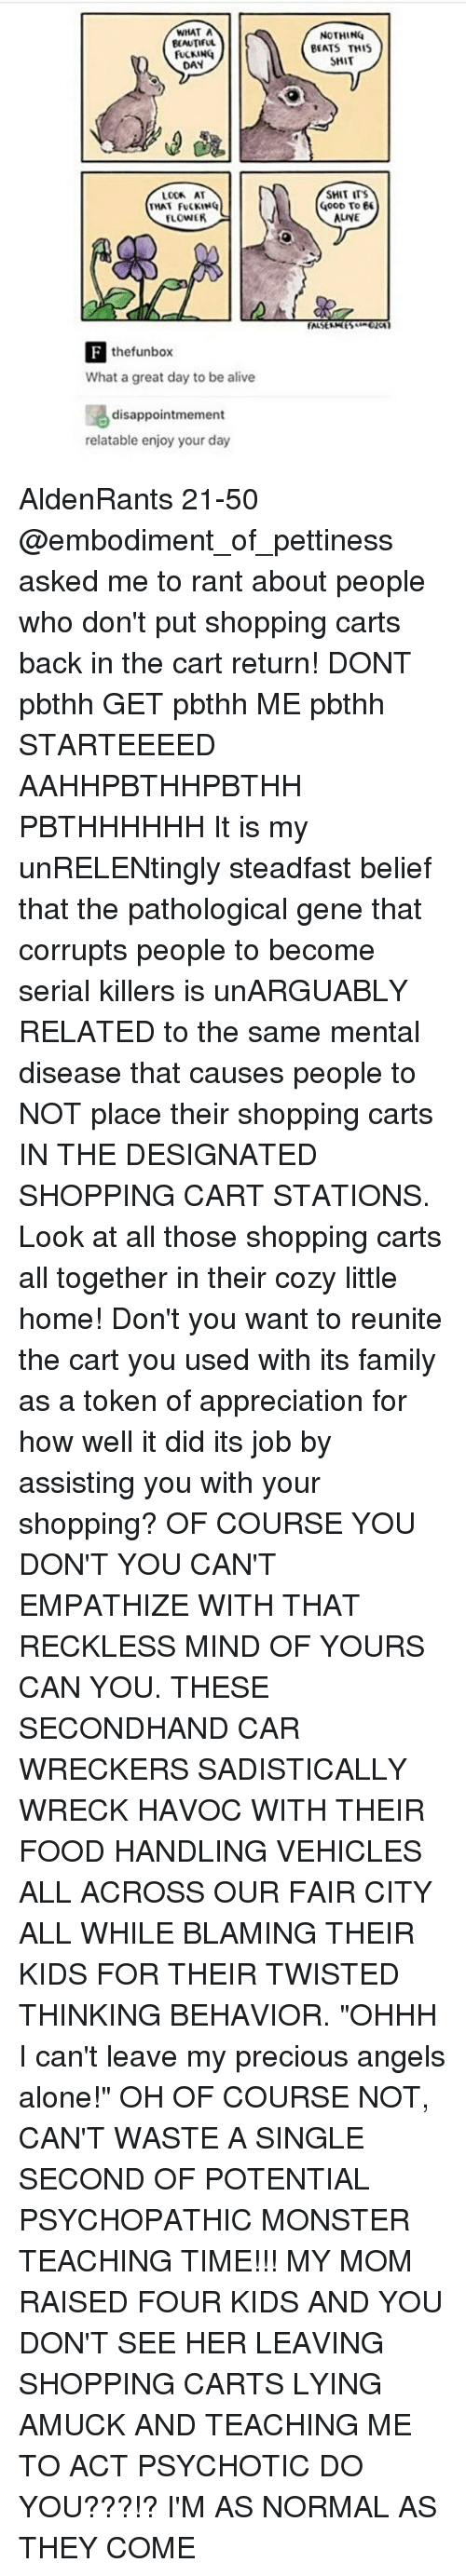 """wrecking: WHAT A  BEAUTIFUL  DAN  THAT FUCKING  FLOWER  the funbox  What a great day to be alive  disappointmement  relatable enjoy your day  NOTHING  BEATS THIS  SHIT  SHIT ITS  OOD To  EE  ALINE AldenRants 21-50 @embodiment_of_pettiness asked me to rant about people who don't put shopping carts back in the cart return! DONT pbthh GET pbthh ME pbthh STARTEEEED AAHHPBTHHPBTHH PBTHHHHHH It is my unRELENtingly steadfast belief that the pathological gene that corrupts people to become serial killers is unARGUABLY RELATED to the same mental disease that causes people to NOT place their shopping carts IN THE DESIGNATED SHOPPING CART STATIONS. Look at all those shopping carts all together in their cozy little home! Don't you want to reunite the cart you used with its family as a token of appreciation for how well it did its job by assisting you with your shopping? OF COURSE YOU DON'T YOU CAN'T EMPATHIZE WITH THAT RECKLESS MIND OF YOURS CAN YOU. THESE SECONDHAND CAR WRECKERS SADISTICALLY WRECK HAVOC WITH THEIR FOOD HANDLING VEHICLES ALL ACROSS OUR FAIR CITY ALL WHILE BLAMING THEIR KIDS FOR THEIR TWISTED THINKING BEHAVIOR. """"OHHH I can't leave my precious angels alone!"""" OH OF COURSE NOT, CAN'T WASTE A SINGLE SECOND OF POTENTIAL PSYCHOPATHIC MONSTER TEACHING TIME!!! MY MOM RAISED FOUR KIDS AND YOU DON'T SEE HER LEAVING SHOPPING CARTS LYING AMUCK AND TEACHING ME TO ACT PSYCHOTIC DO YOU???!? I'M AS NORMAL AS THEY COME"""